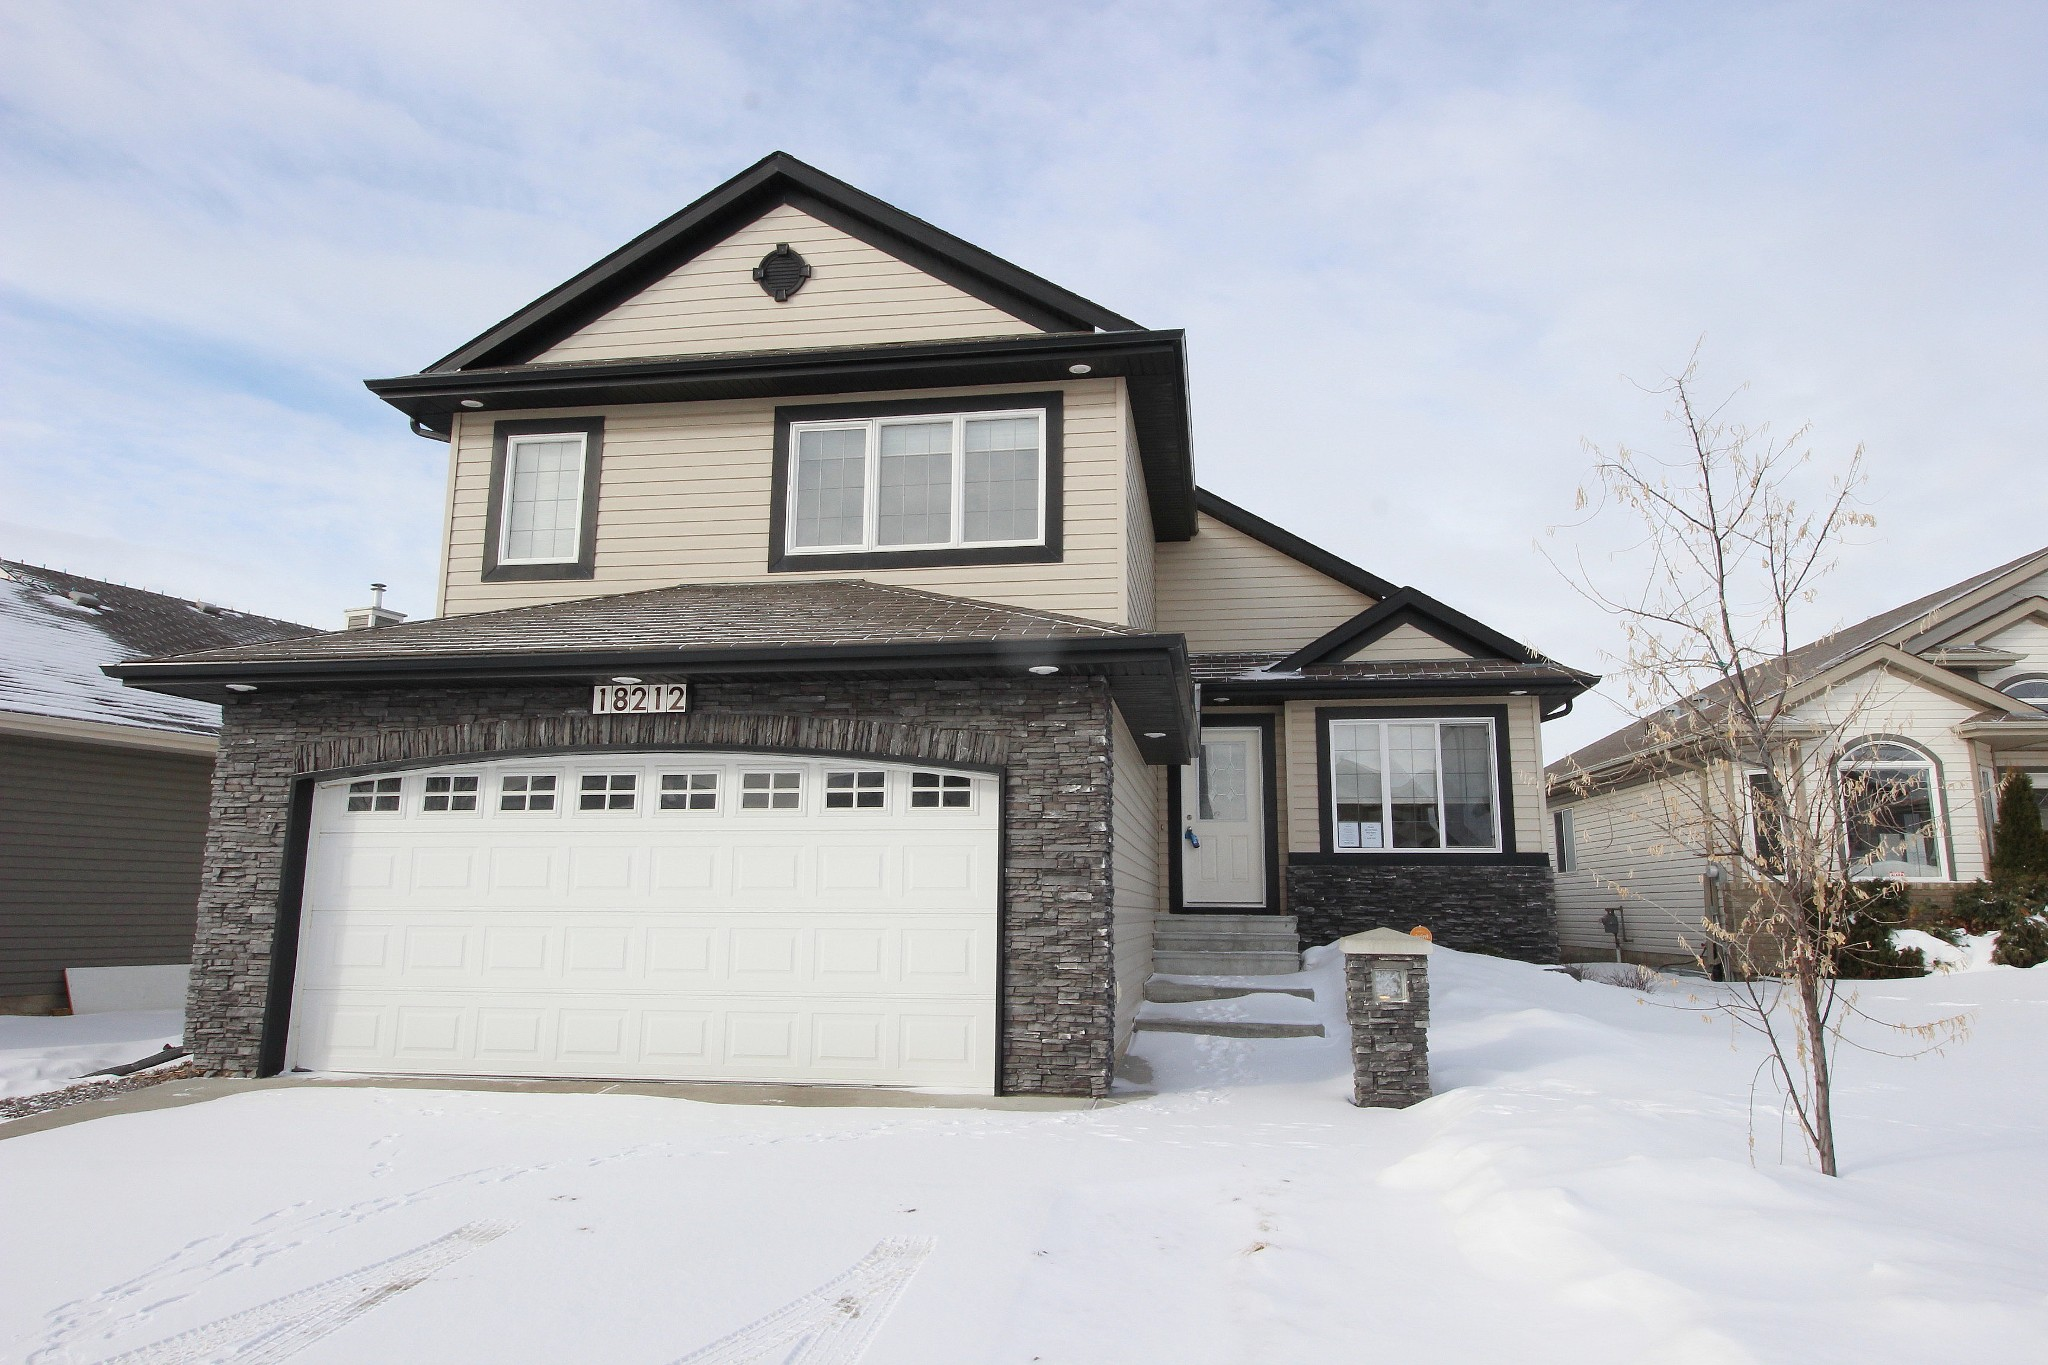 Main Photo: 18212 103 Street NW in Edmonton: House for sale